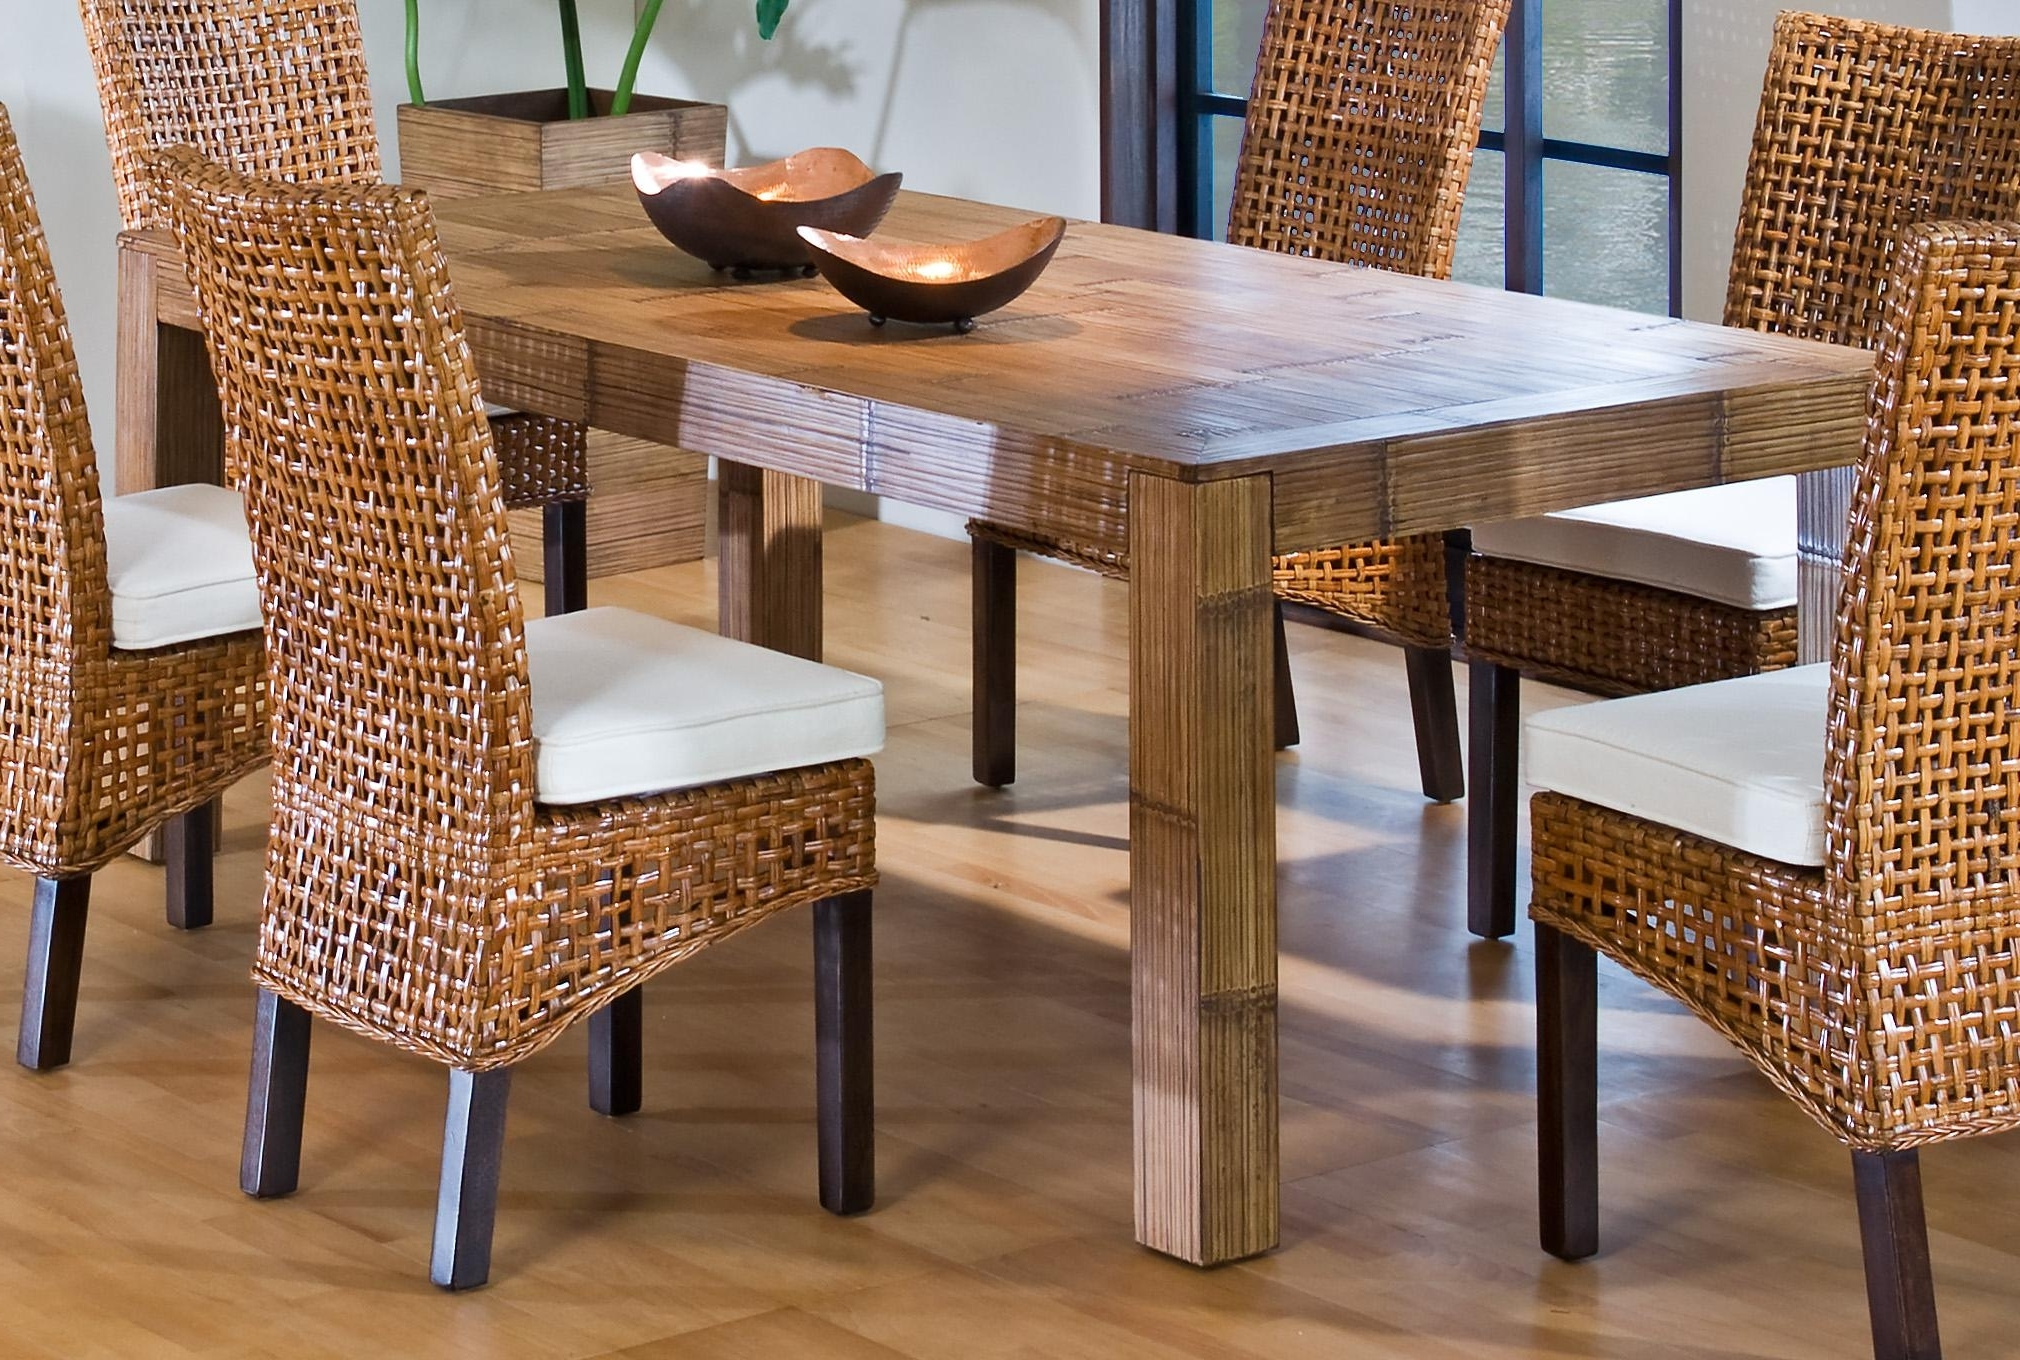 Dining Table Indoor Wicker Dining Table Dining Table And 8 Chairs Regarding Most Current Rattan Dining Tables (Gallery 2 of 25)